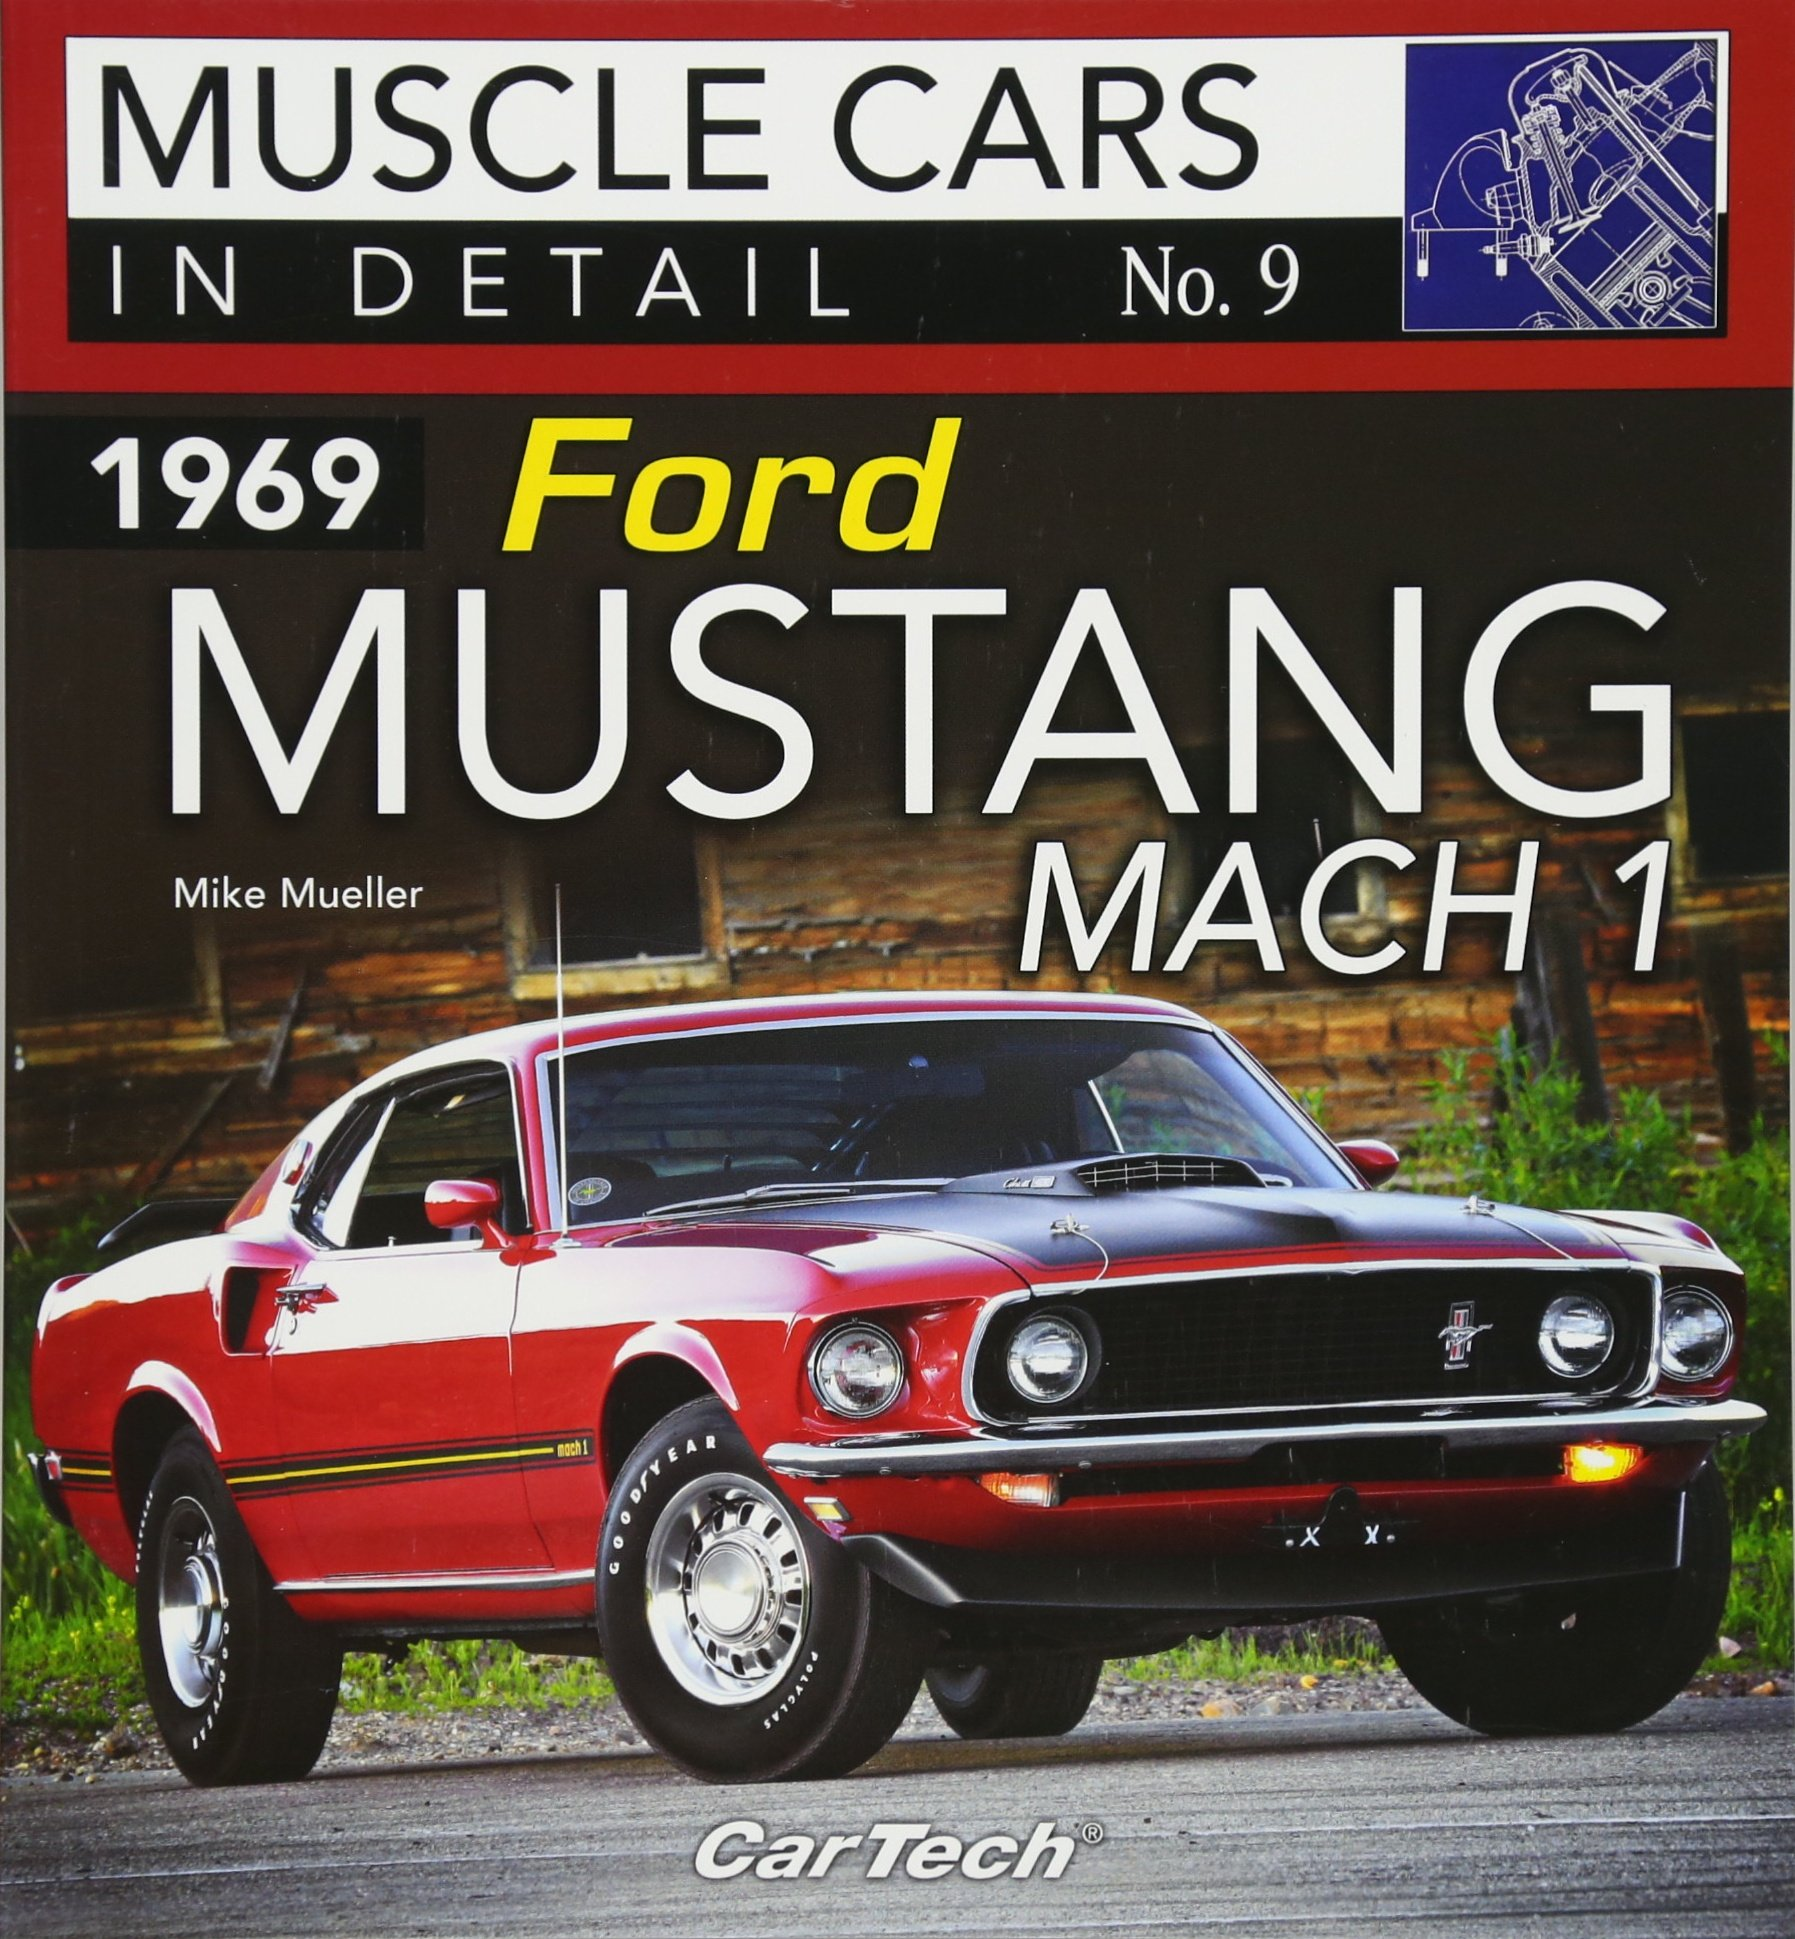 Download 1969 Ford Mustang Mach 1: Muscle Cars In Detail No. 9 ebook